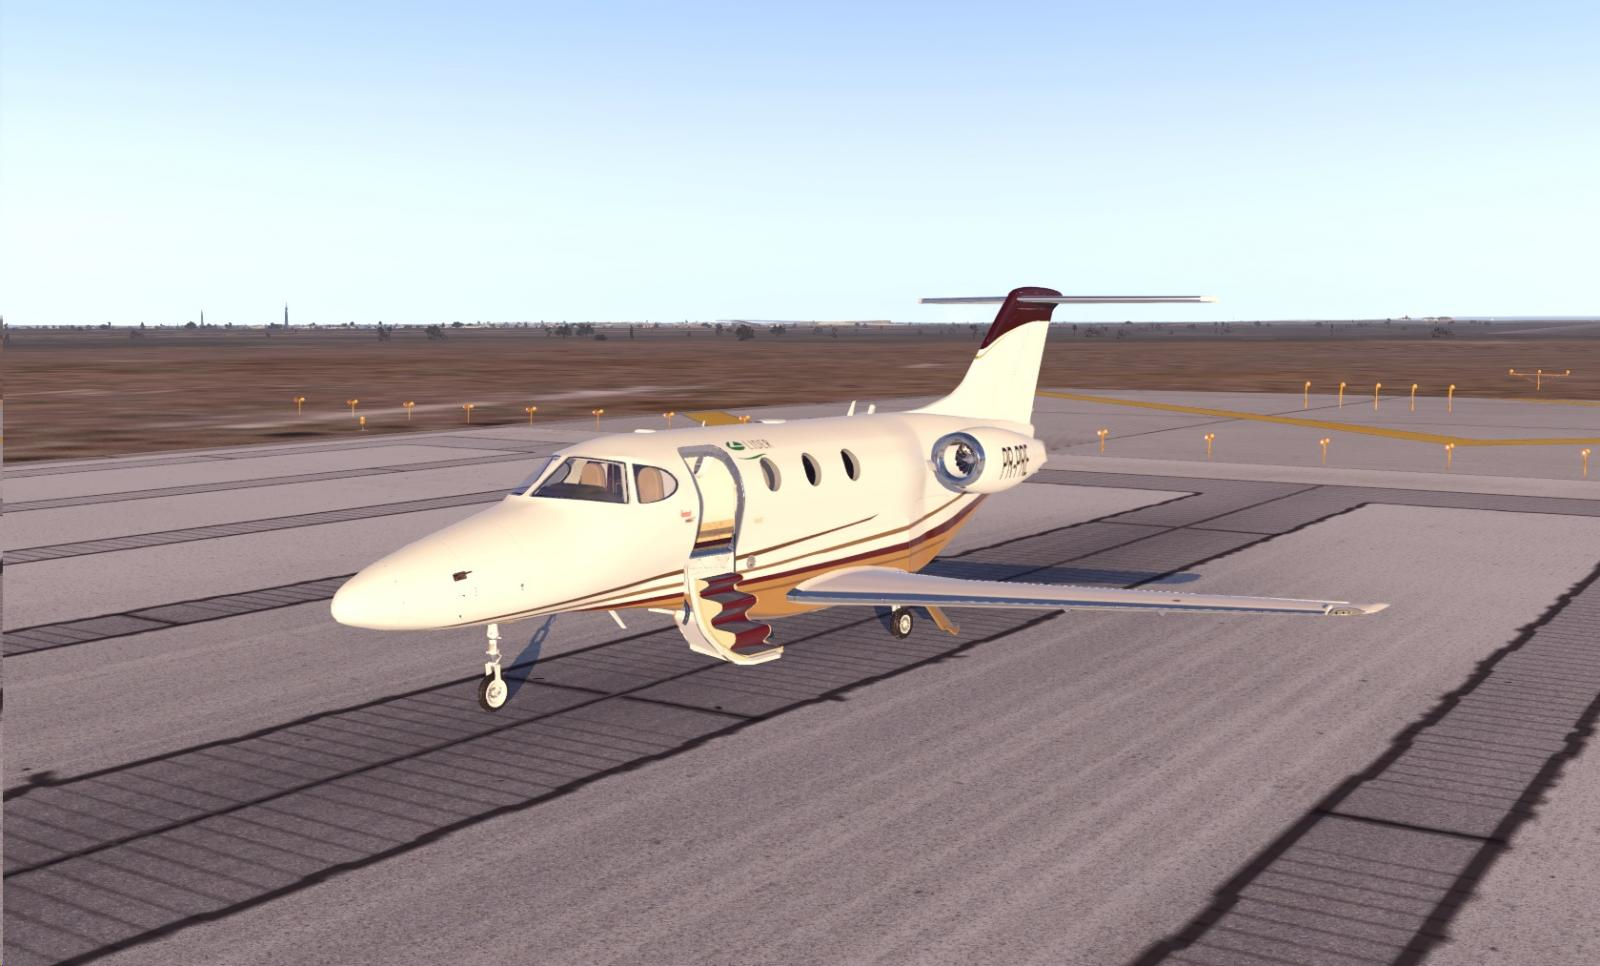 Where Are The HD Business Jets? - General X-Plane Forum - X